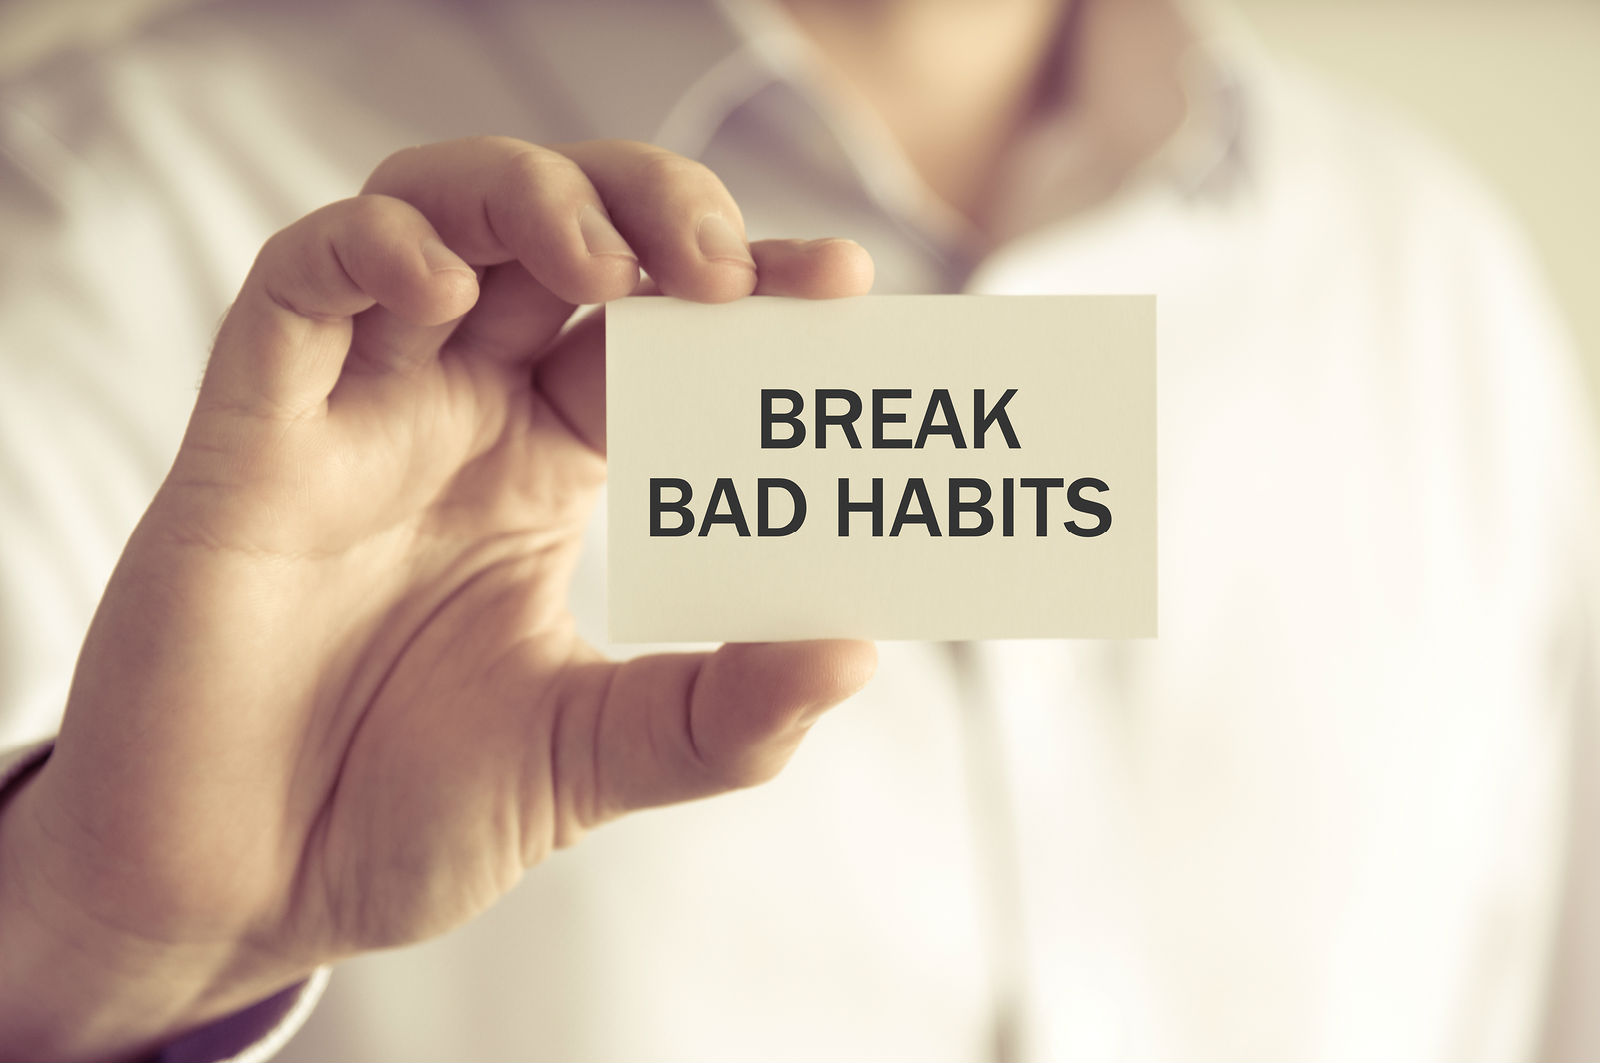 Gain Courage To Free Yourself From Bad Habits: Try These Simple Hacks